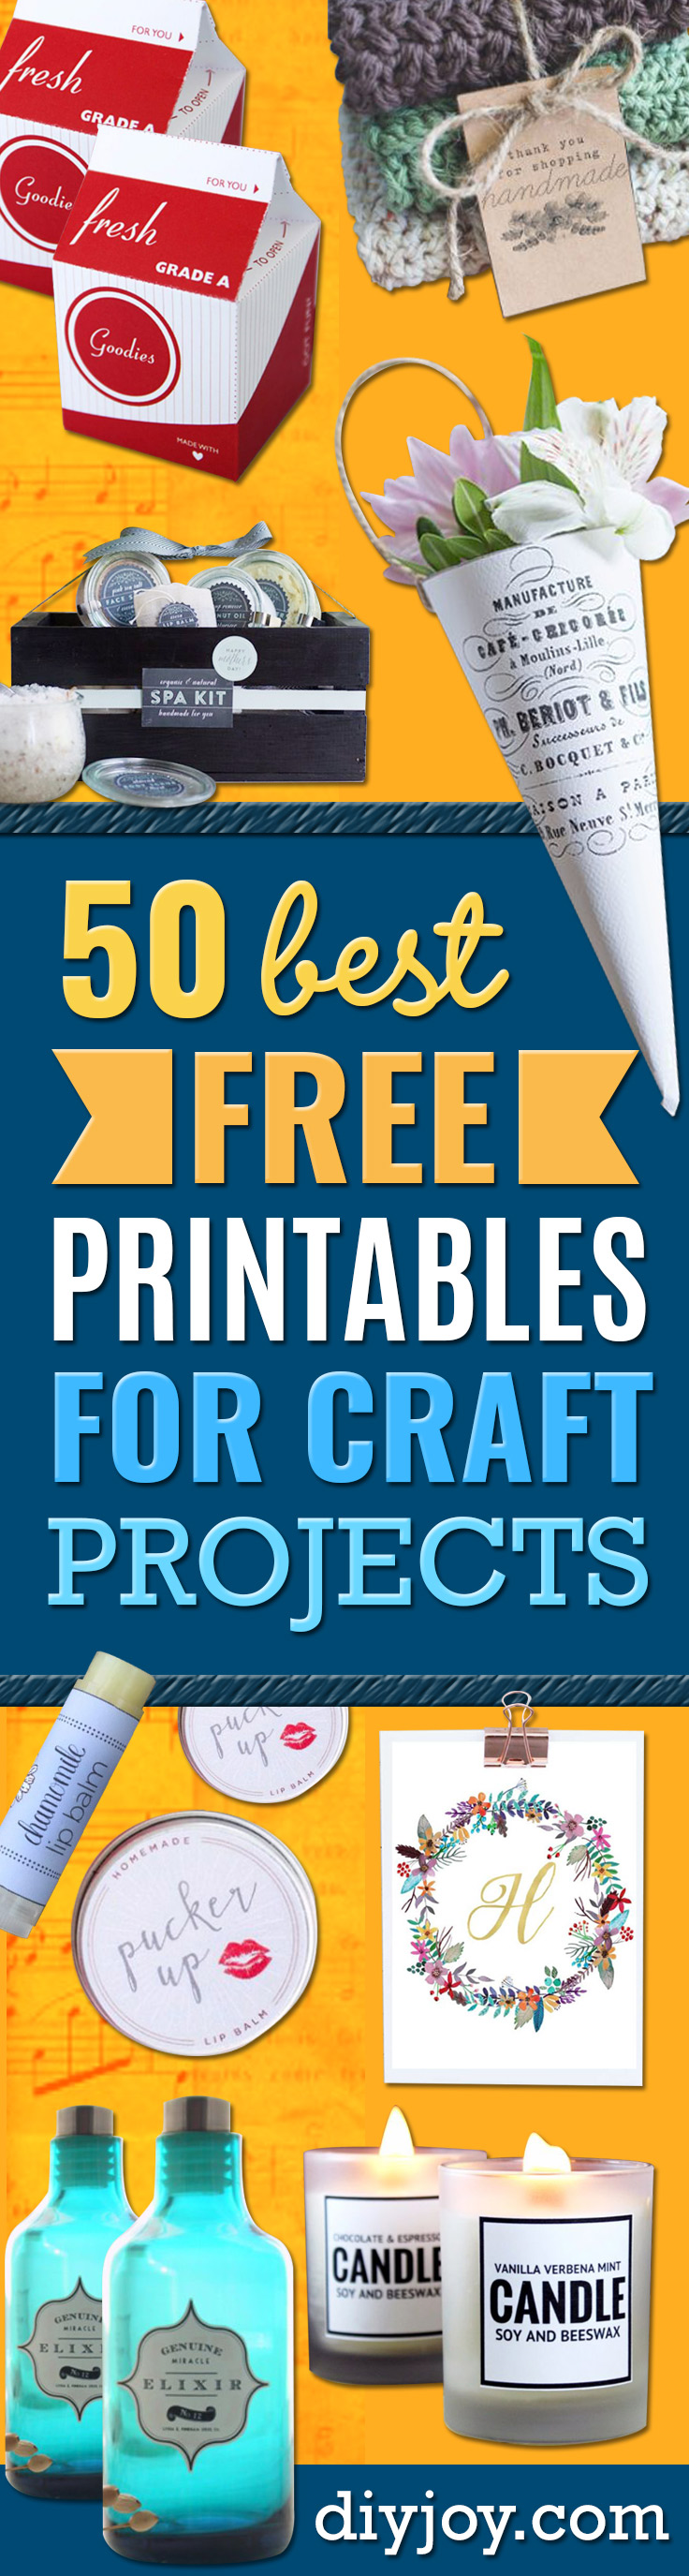 Best Free Printables for Crafts - Quotes, Templates, Paper Projects and Cards, DIY Gifts Cards, Stickers and Wall Art You Can Print At Home - Use These Fun Do It Yourself Template and Craft Ideas for Your Next Craft Projects - Cute Arts and Crafts Ideas for Kids and Adults to Make on Printer / Printable http://diyjoy.com/best-free-printables-crafts